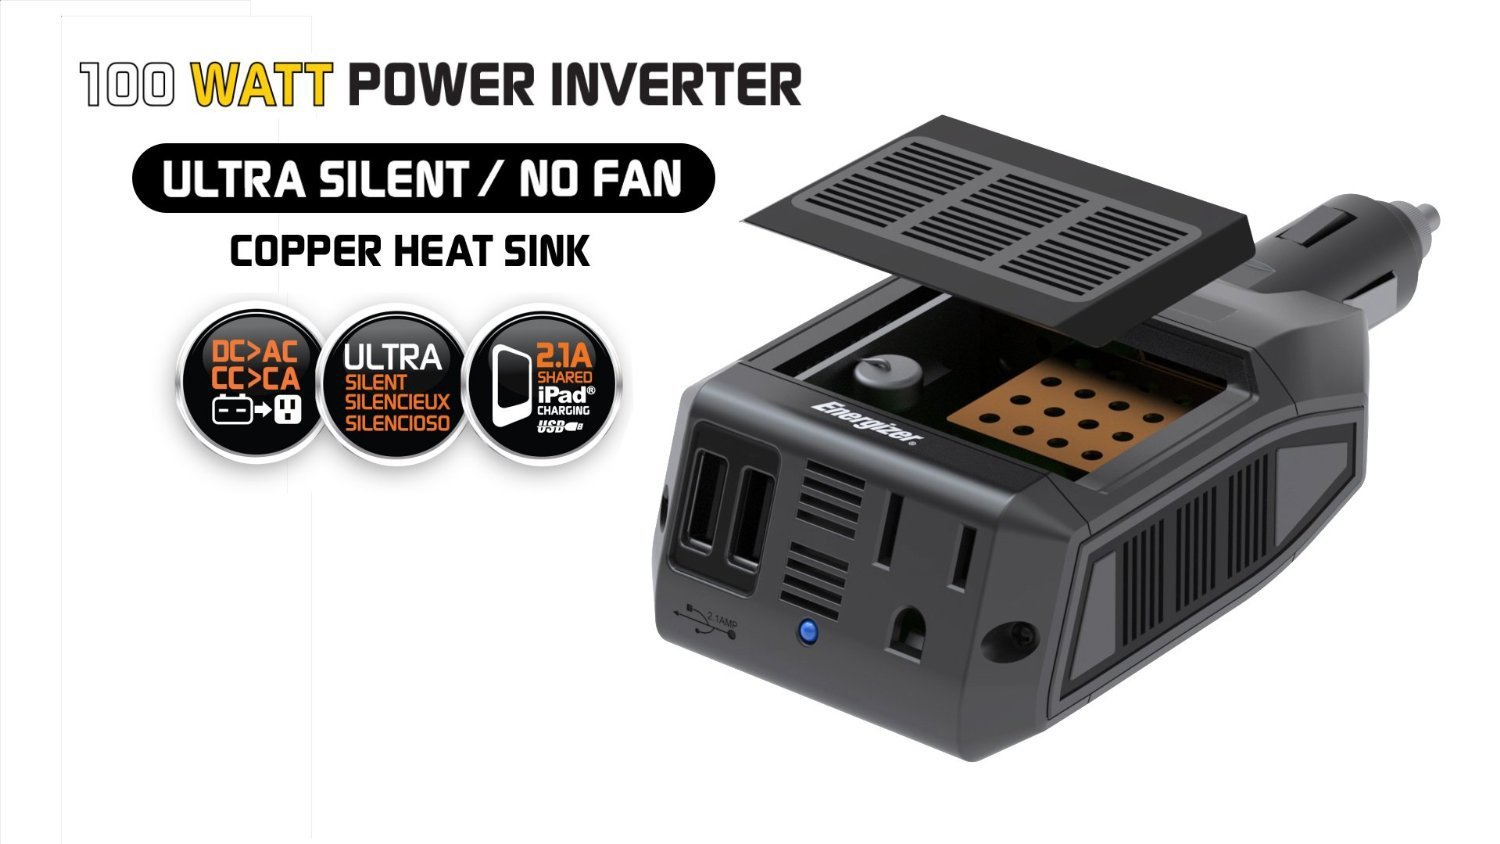 Energizer EN100 Ultra Compact DC to AC 100W Direct Plug-in Power Inverter 1